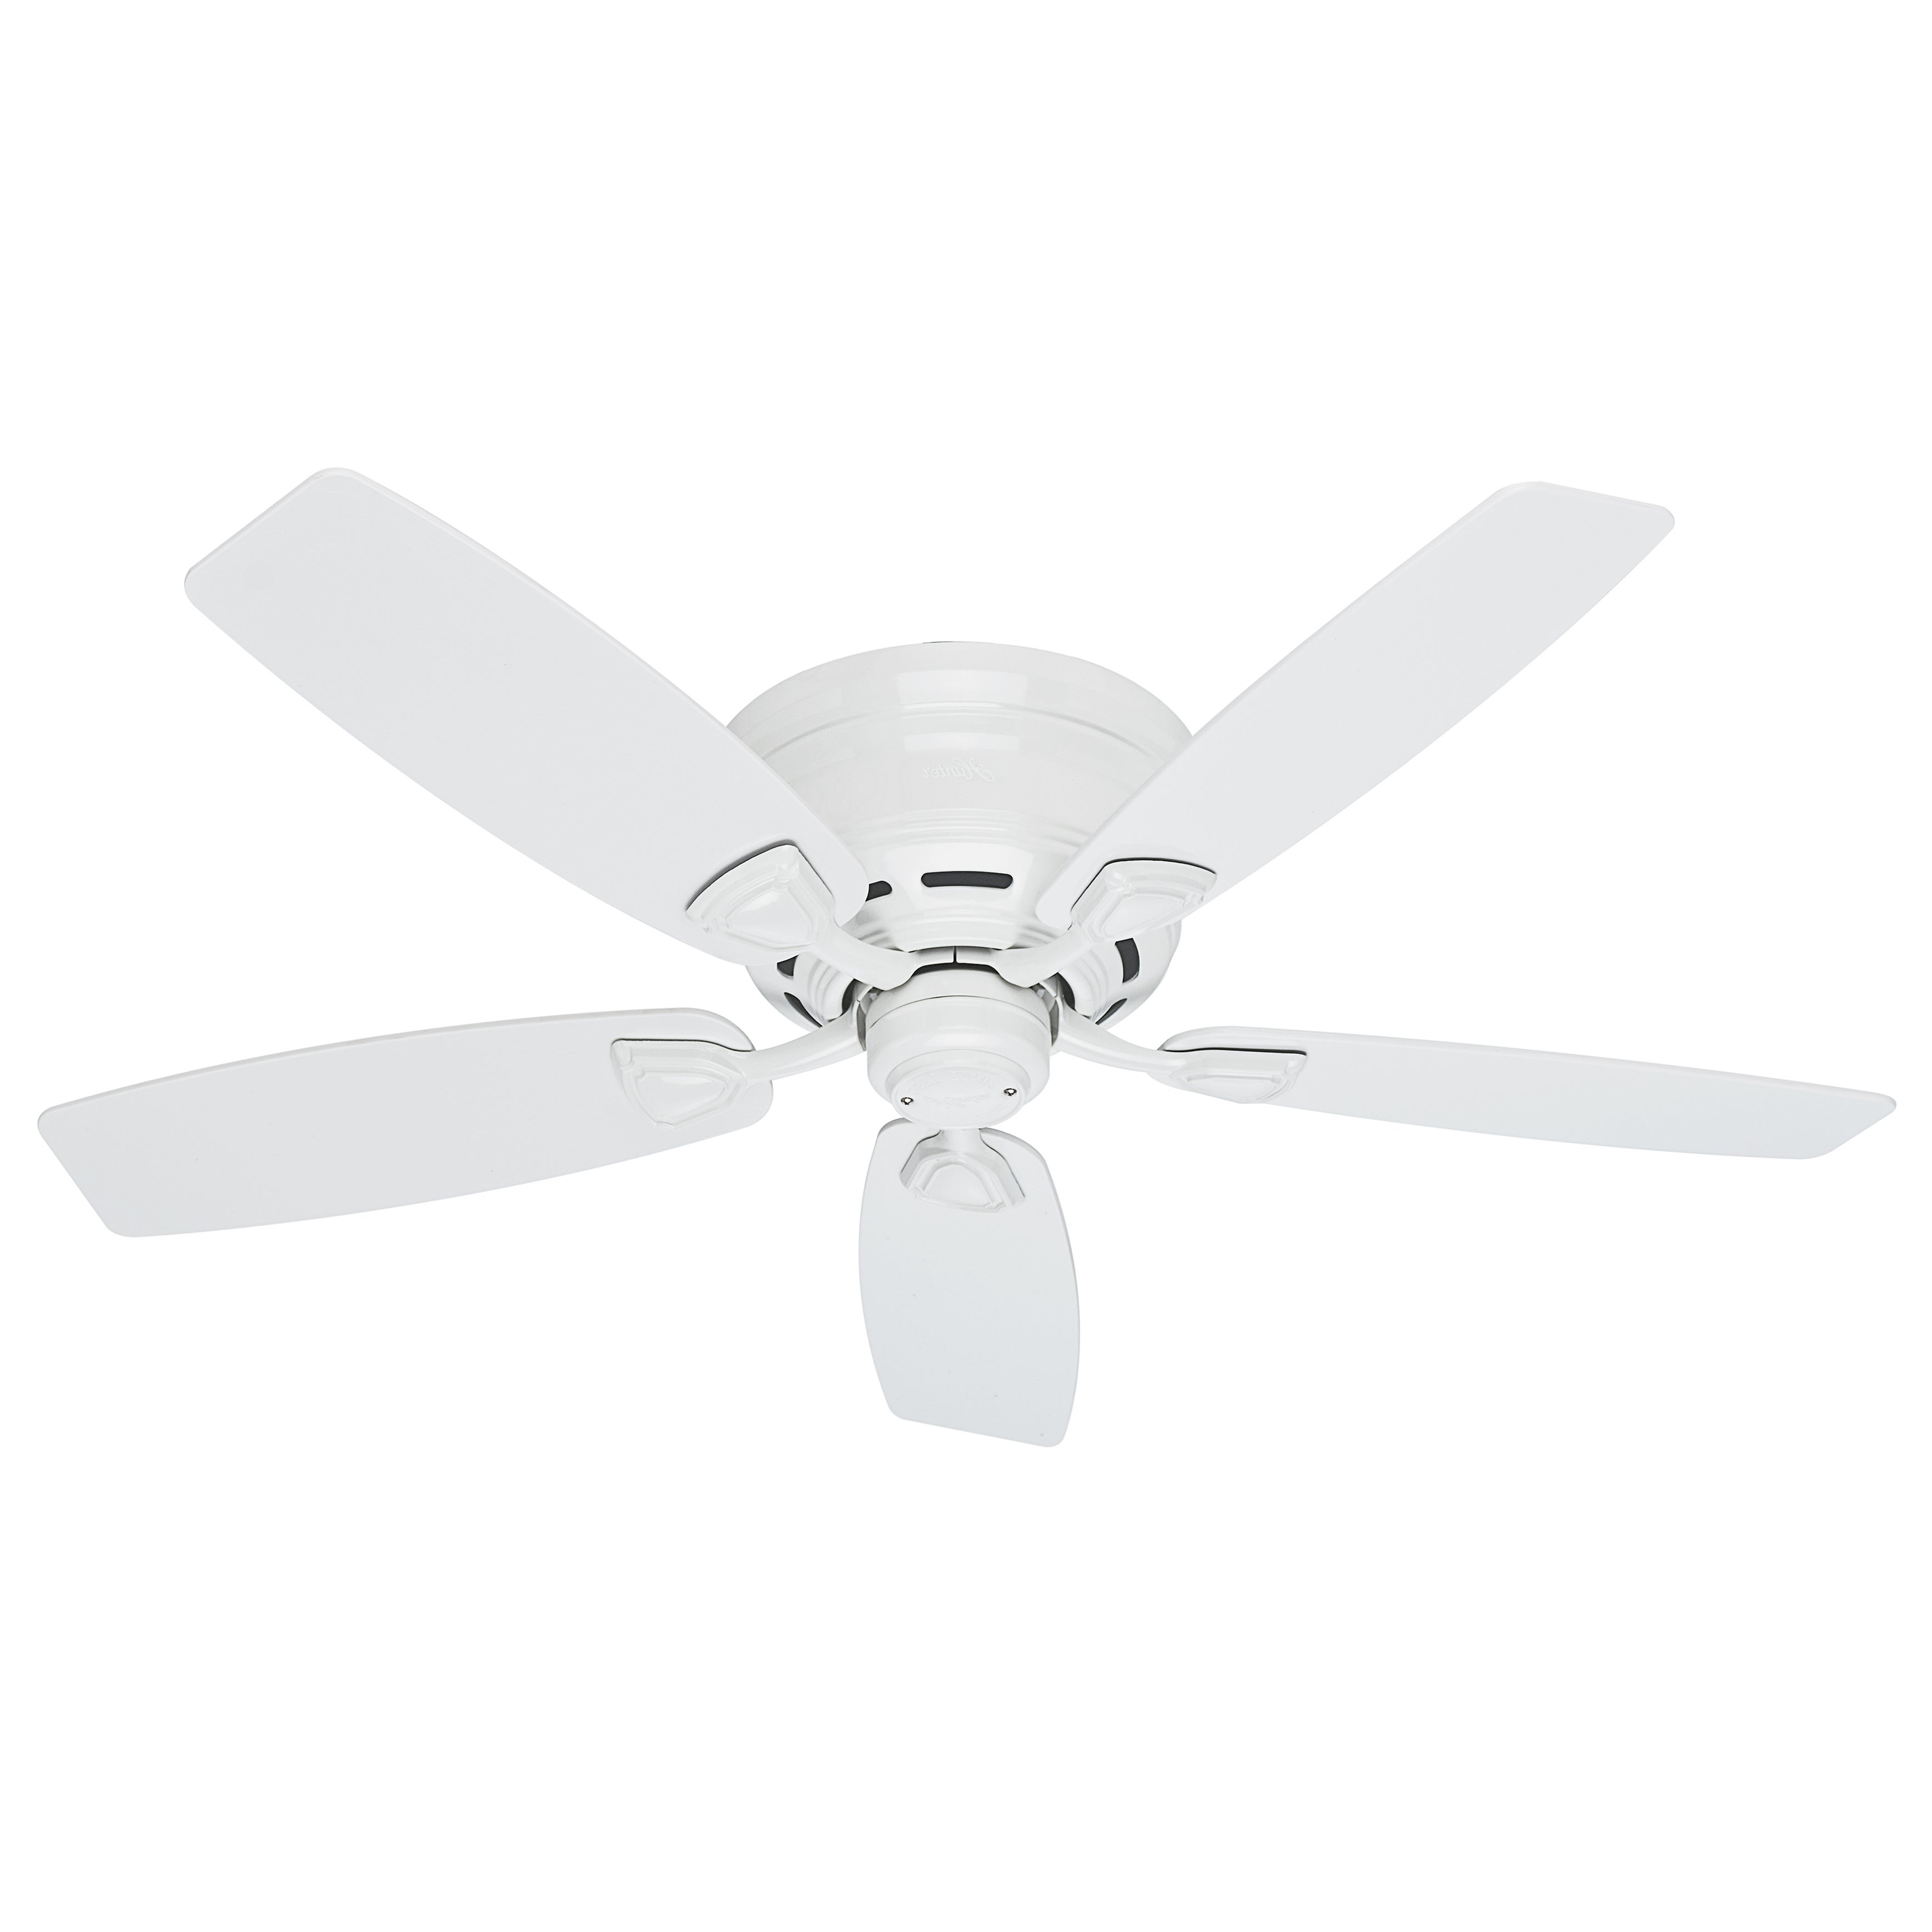 Sea Wind 5 Blade Ceiling Fans With Regard To 2020 Hunter Sea Wind 48 Inch Etl Damp Rated White Ceiling Fan (View 3 of 20)